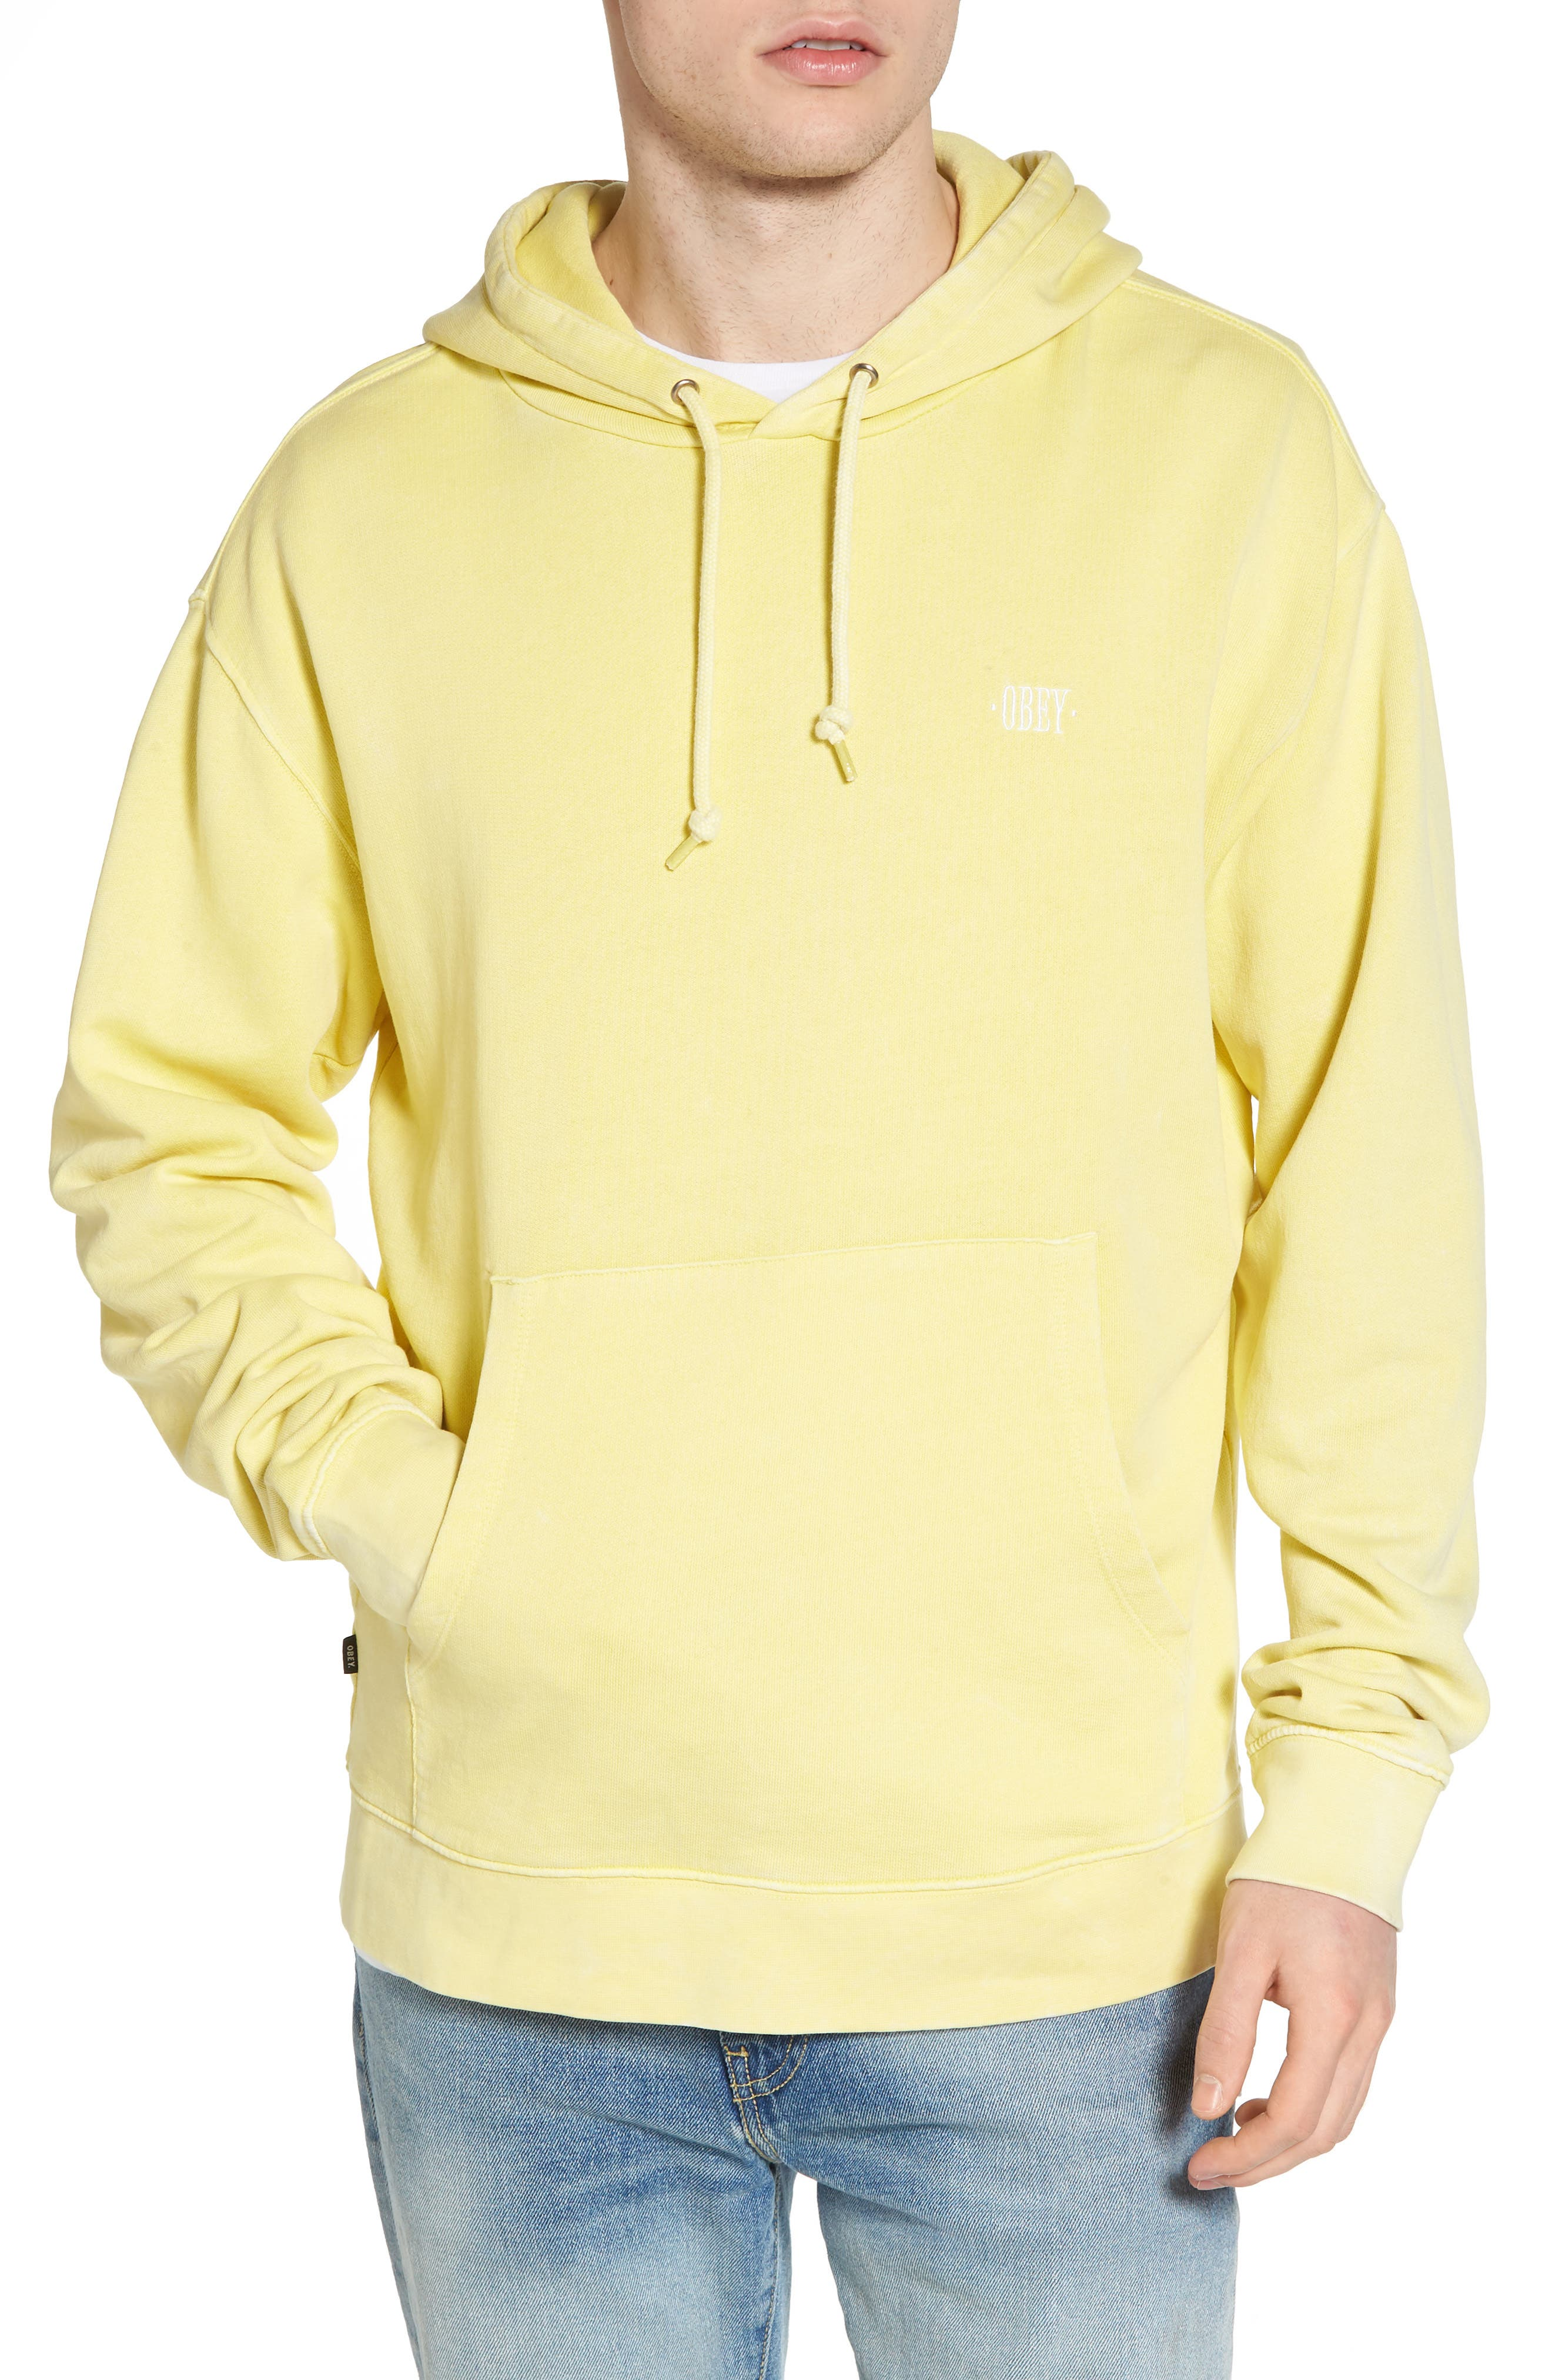 Main Image - Obey Faded Pigment Dyed Hoodie Sweatshirt